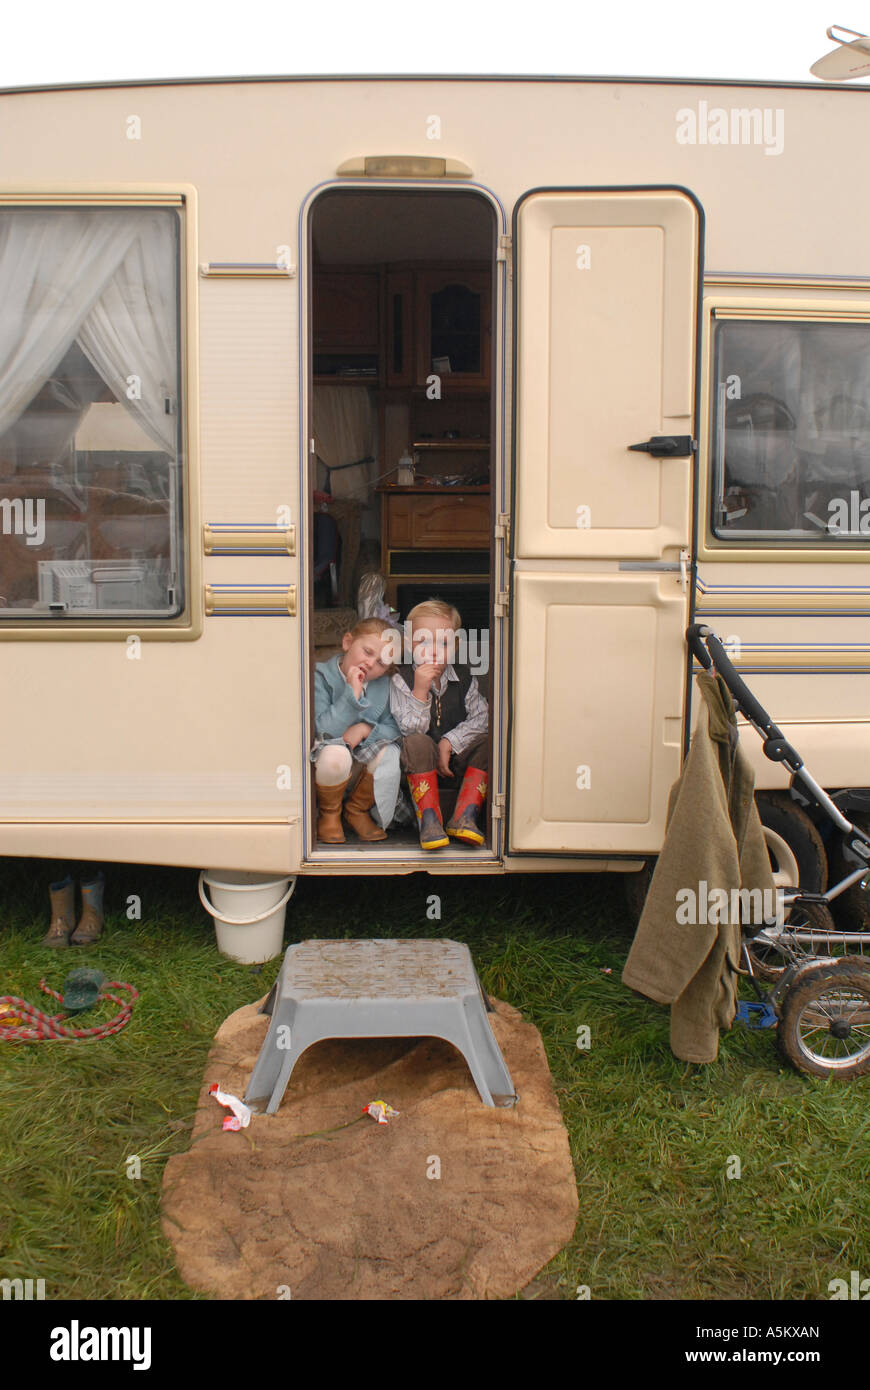 Travellers children, Stow horse fair, Stow On The Wold, Gloucestershire, UK Stock Photo